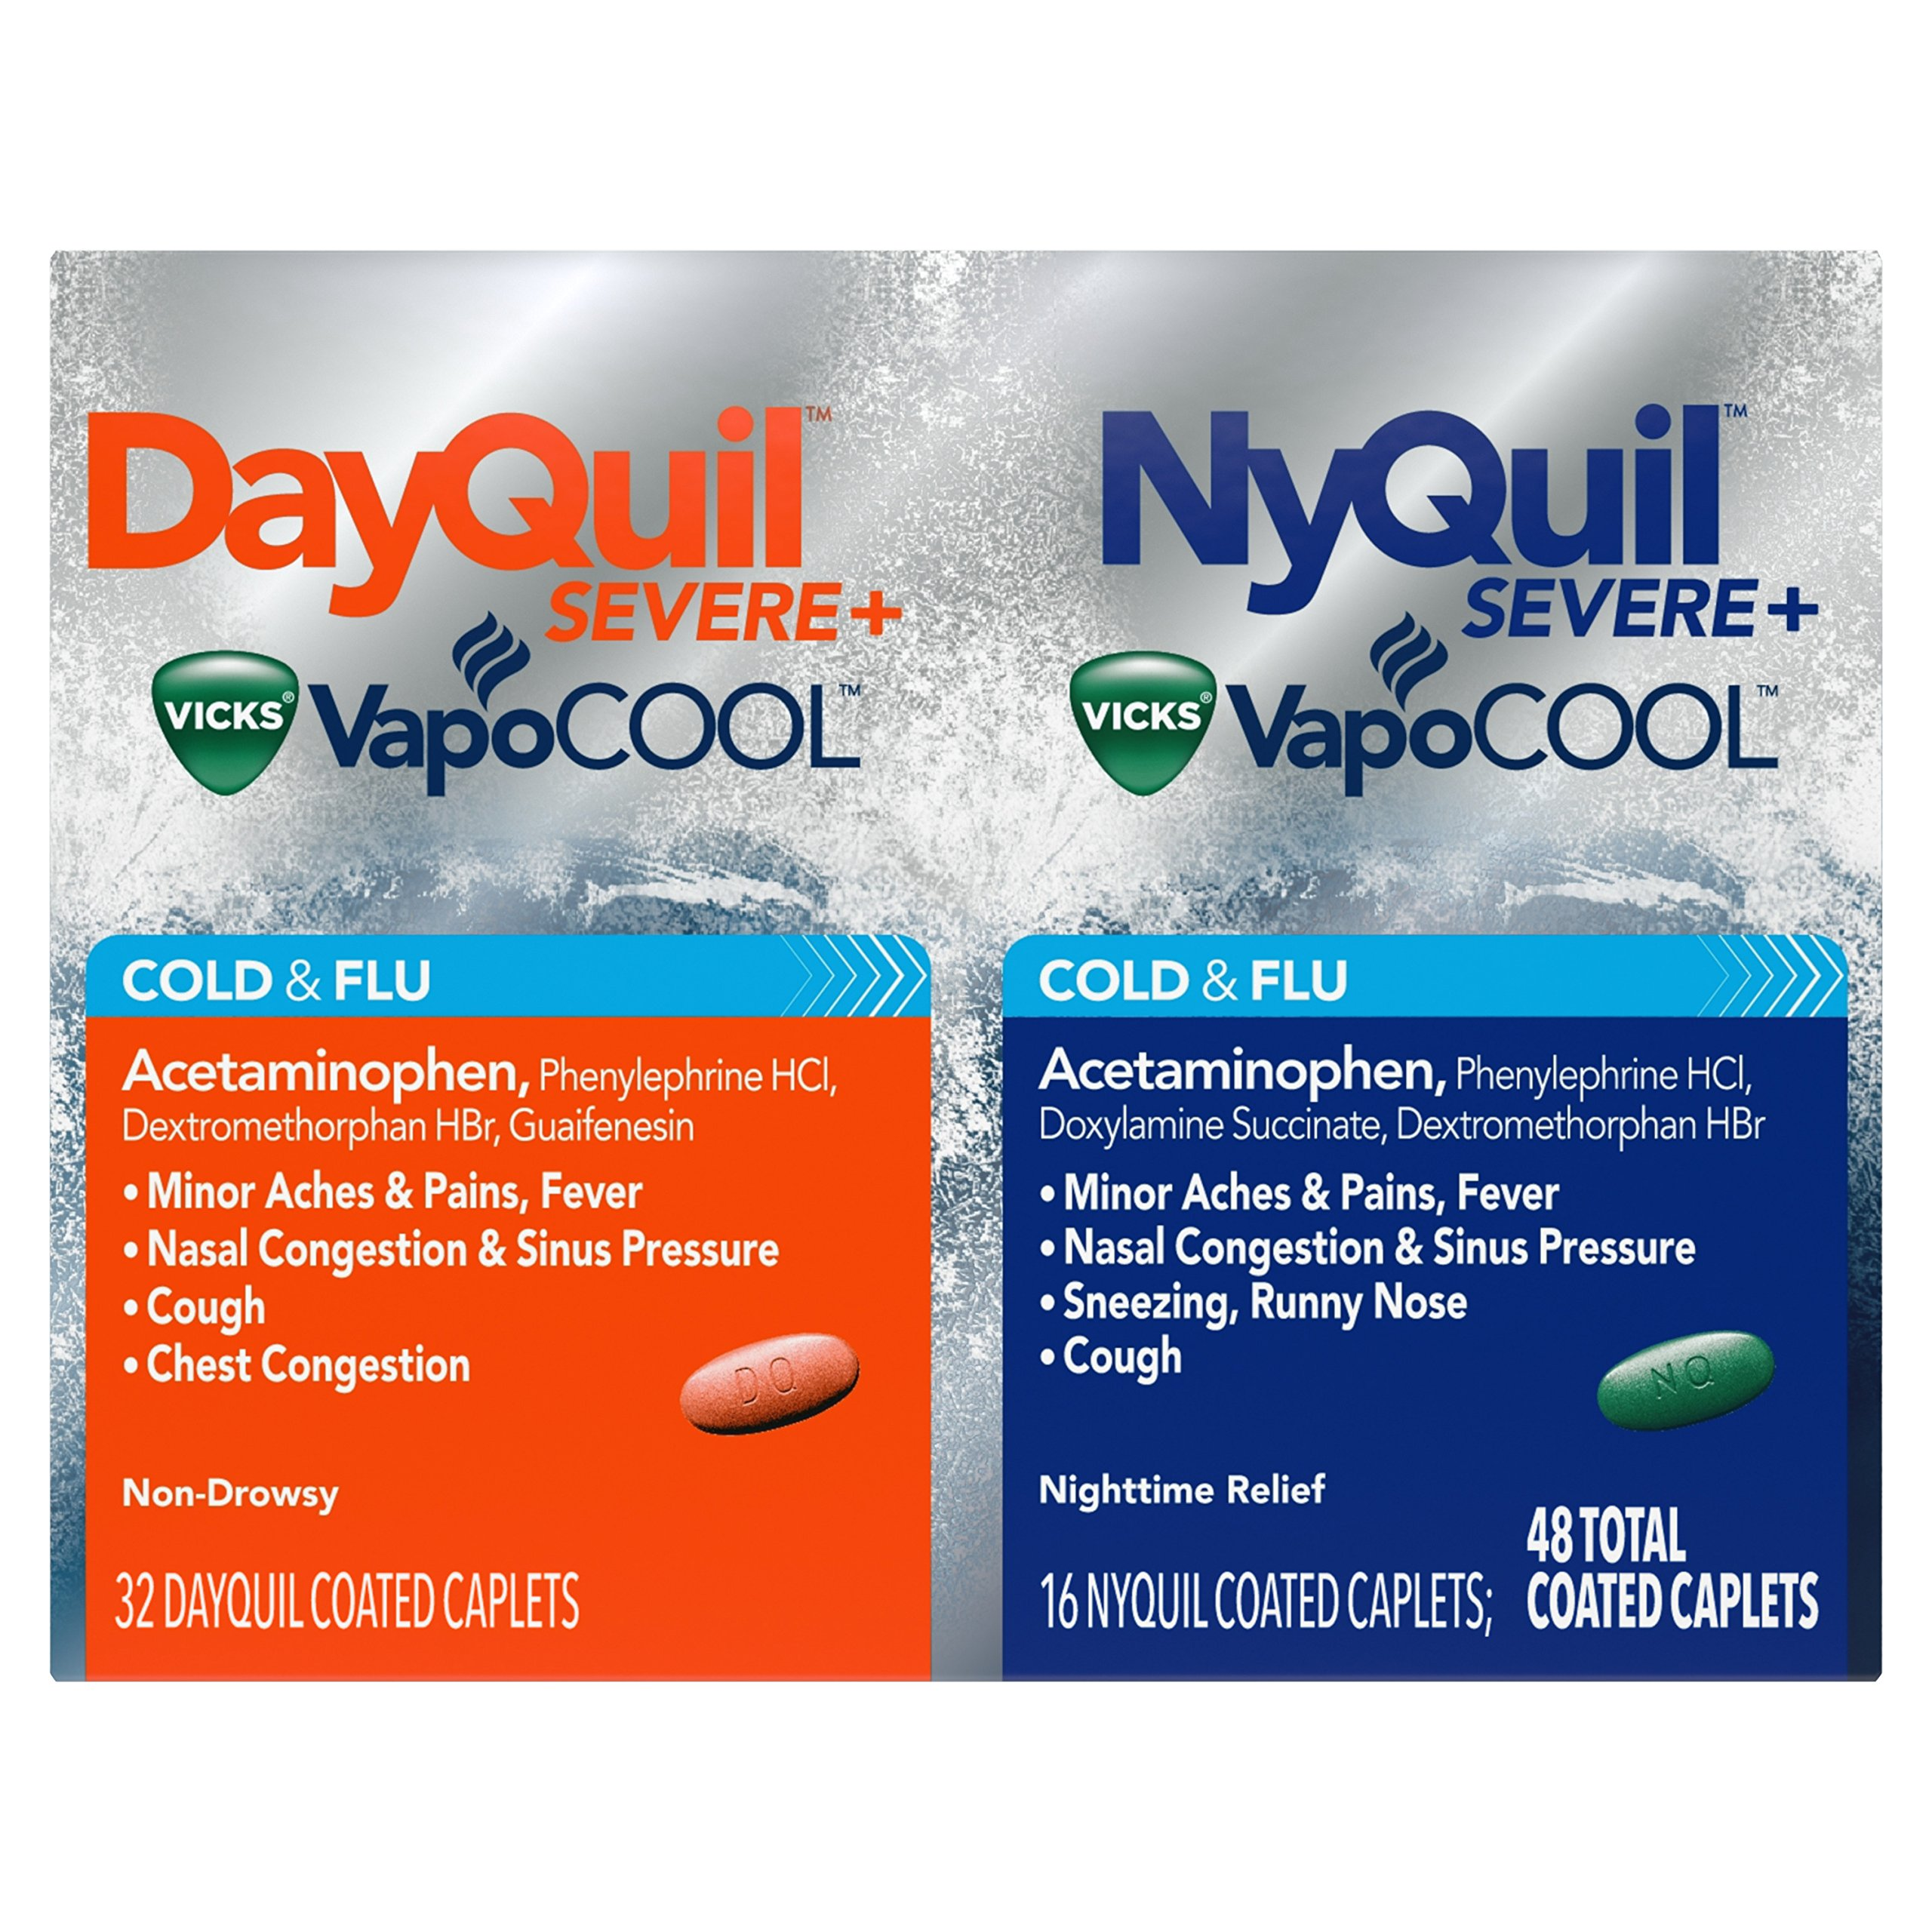 Vicks NyQuil and DayQuil SEVERE Cough Cold and Flu Relief, 48 Caplets (32 DayQuil + 16 NyQuil) (Packaging May Vary)